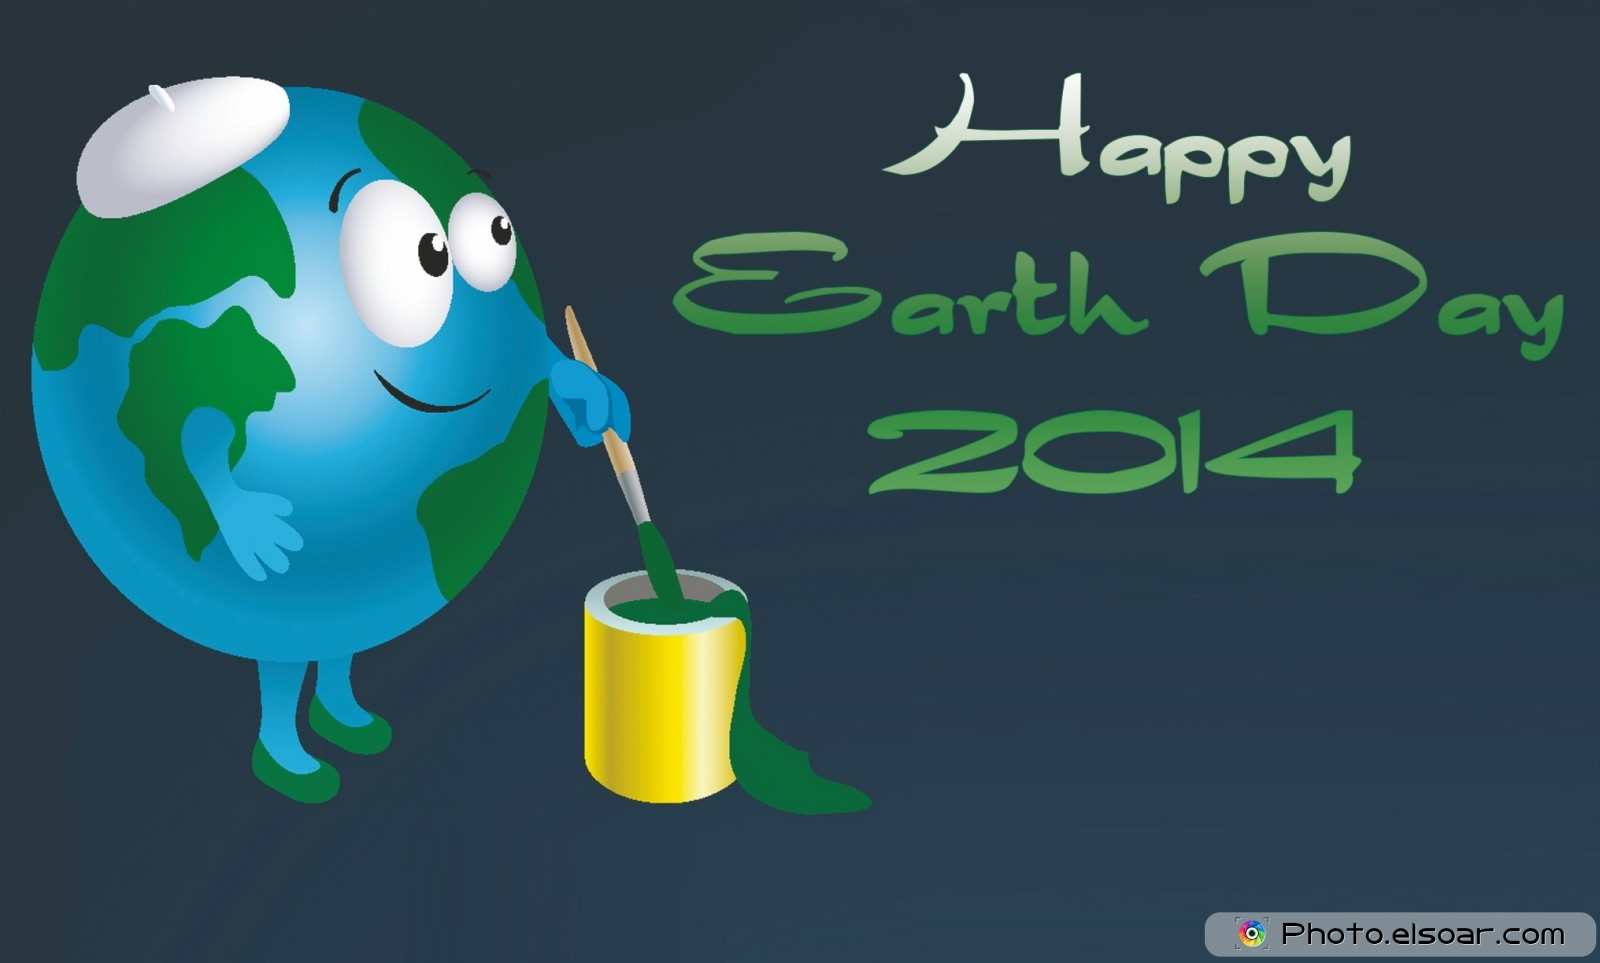 happy earth day 2014